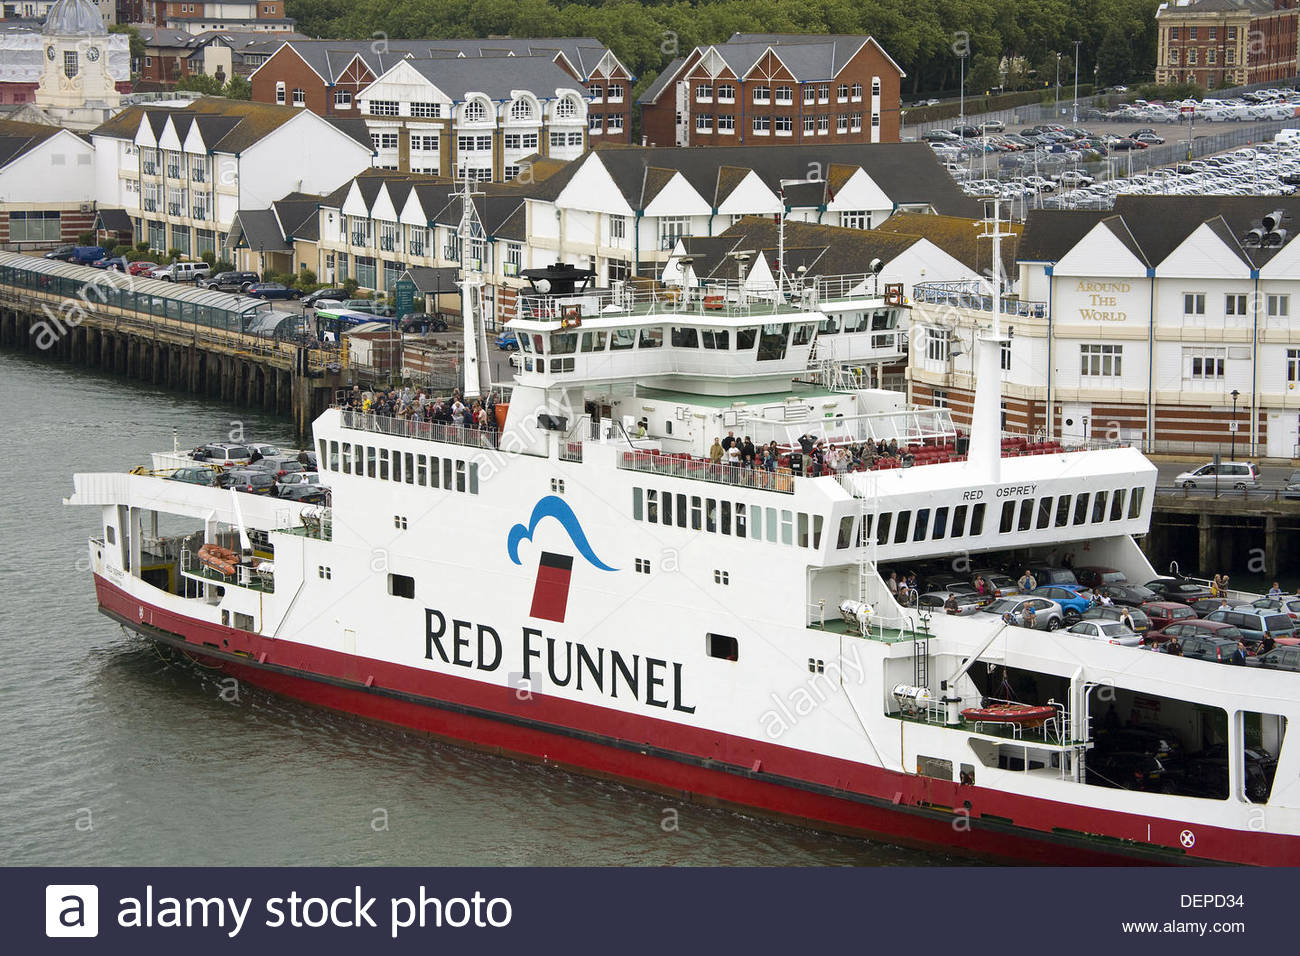 Red Funnel Ferry, Port of Southampton, Hampshire County, England, Great Britain - Stock Image